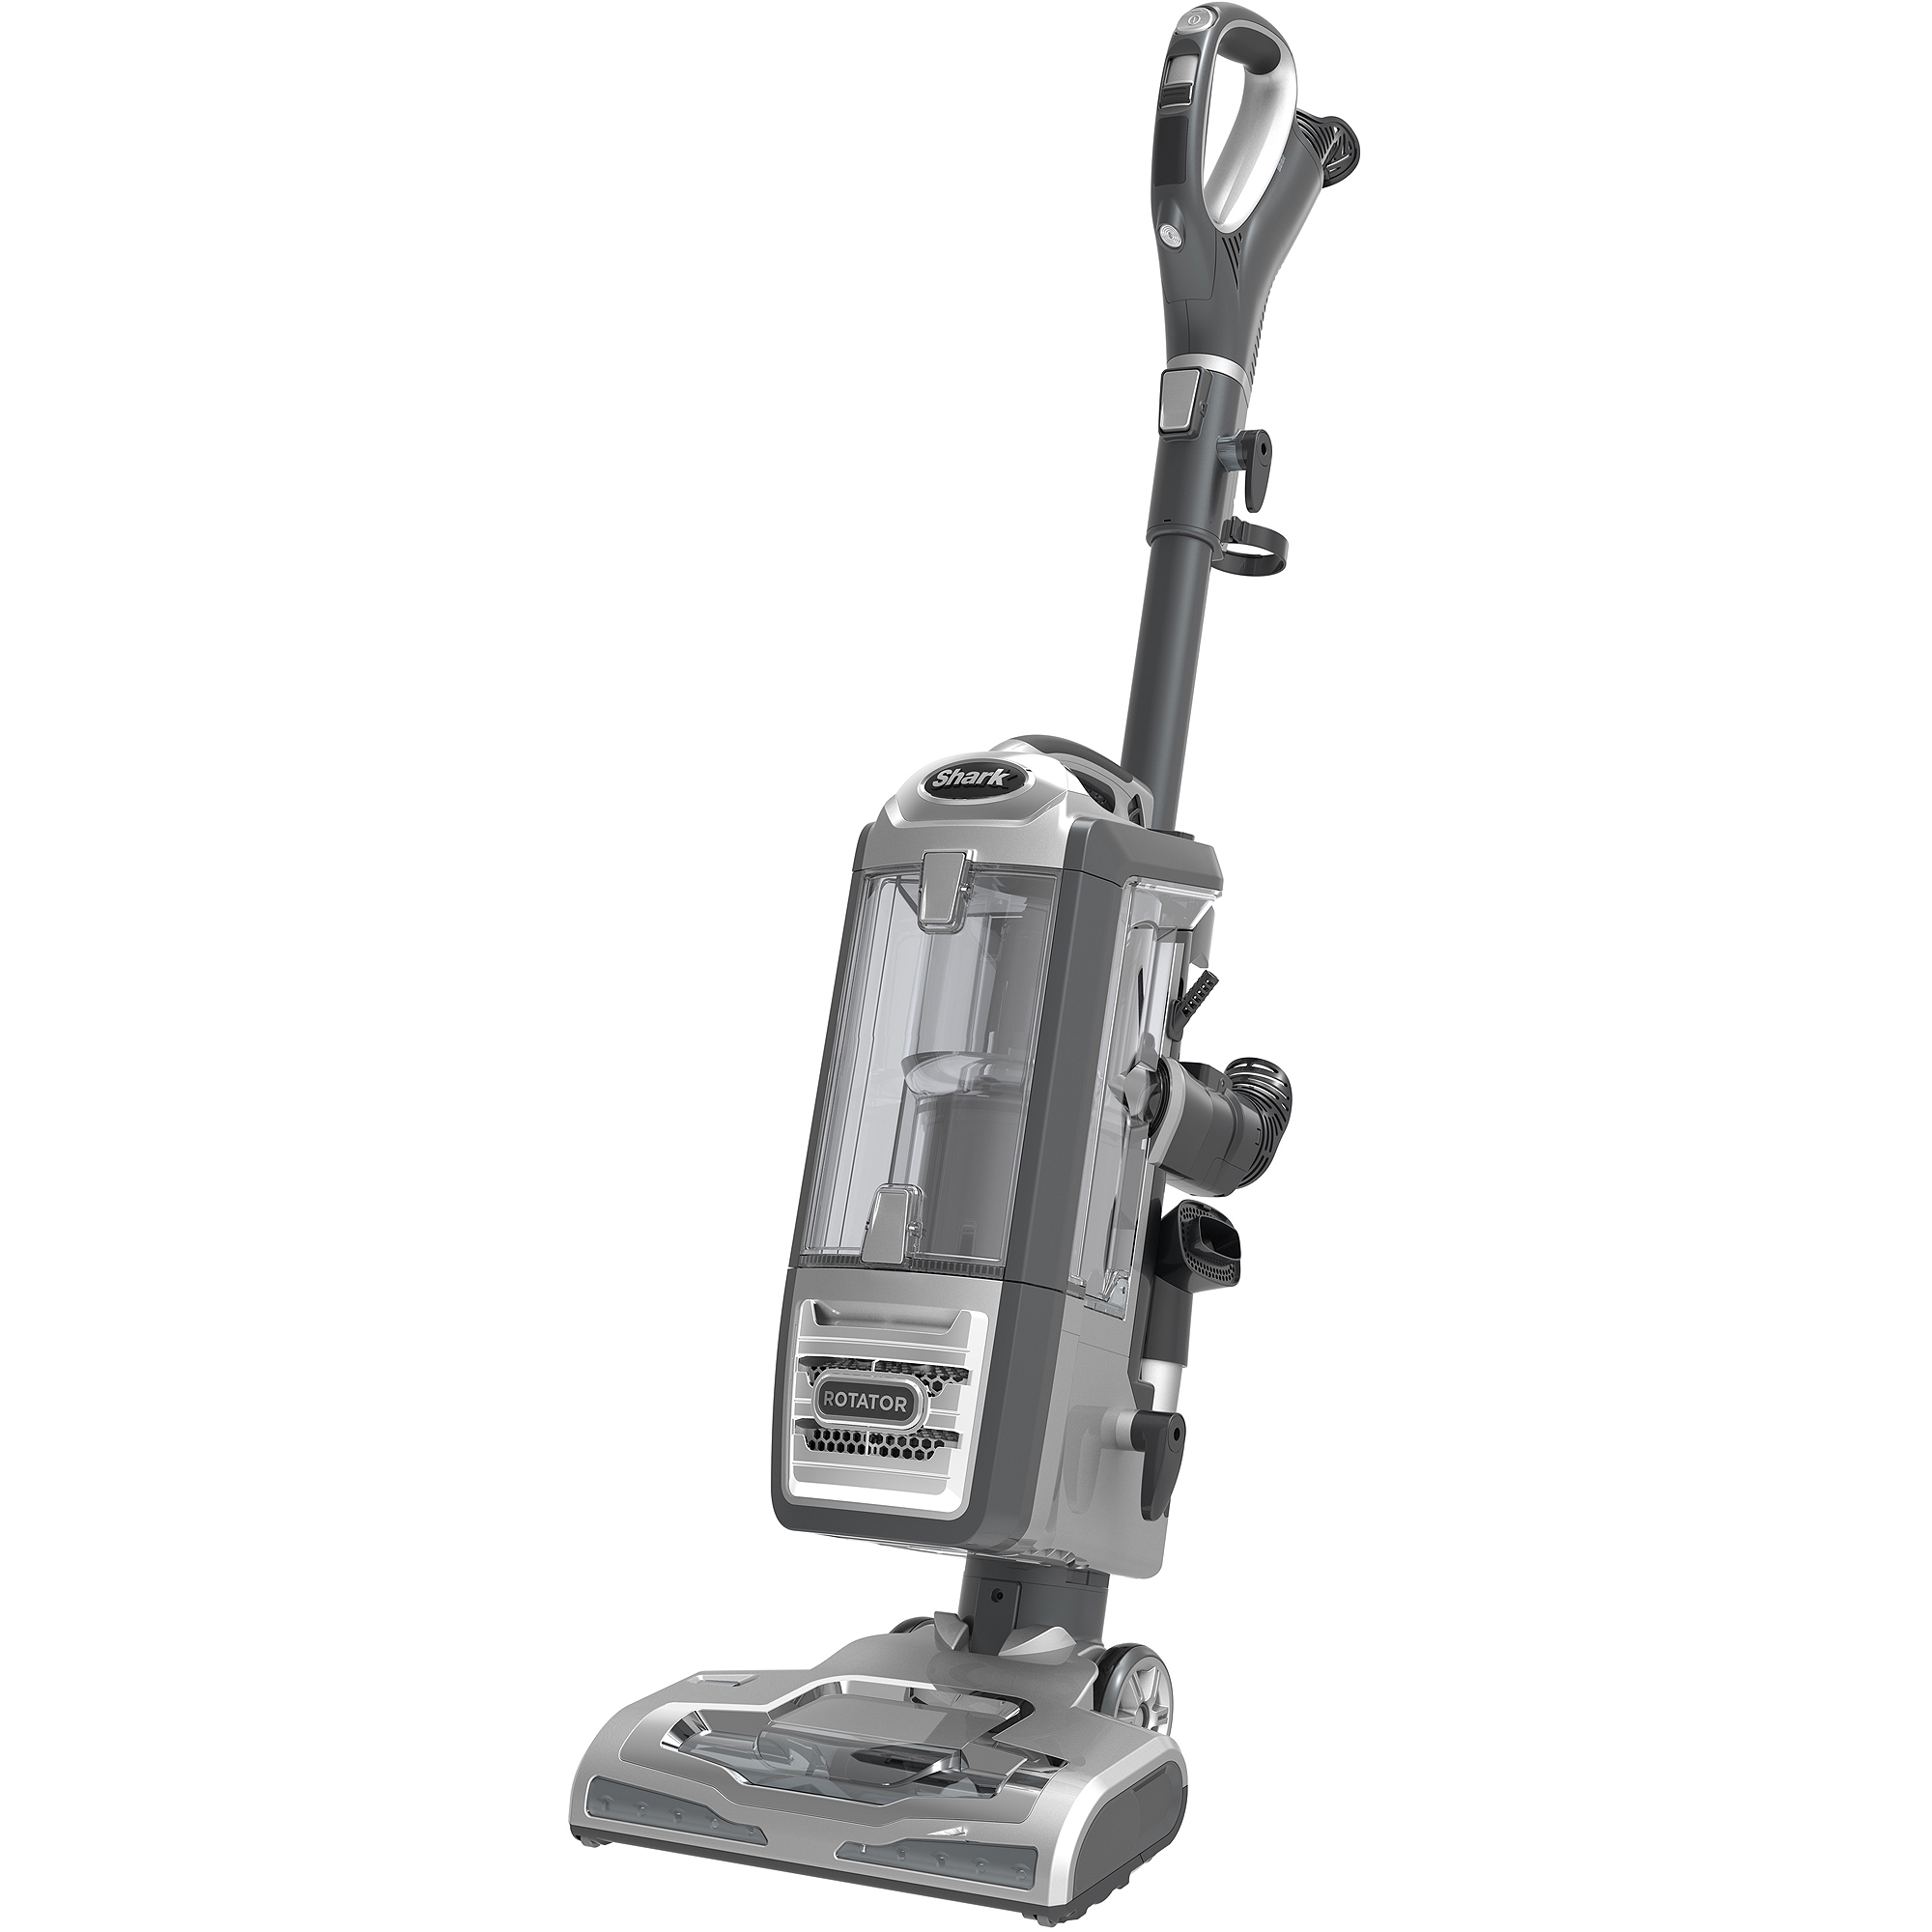 Best Shark Vacuum Cleaners Feb 2018 Cleanwellexpert